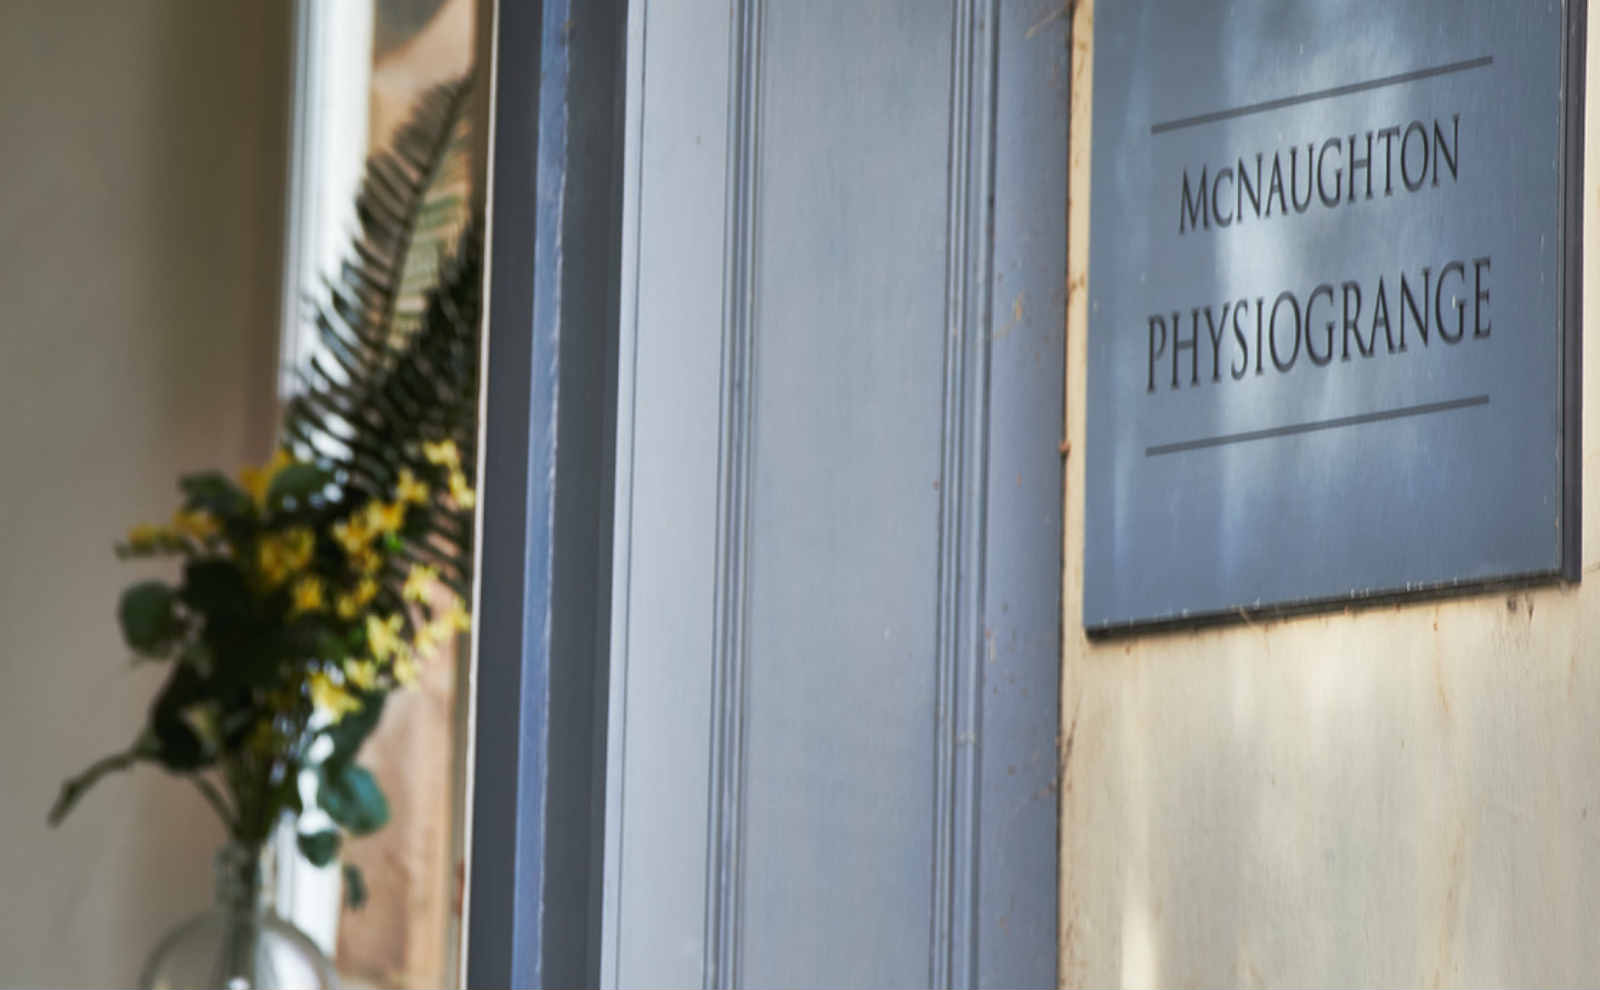 McNaughton PhysioGrange Front Door